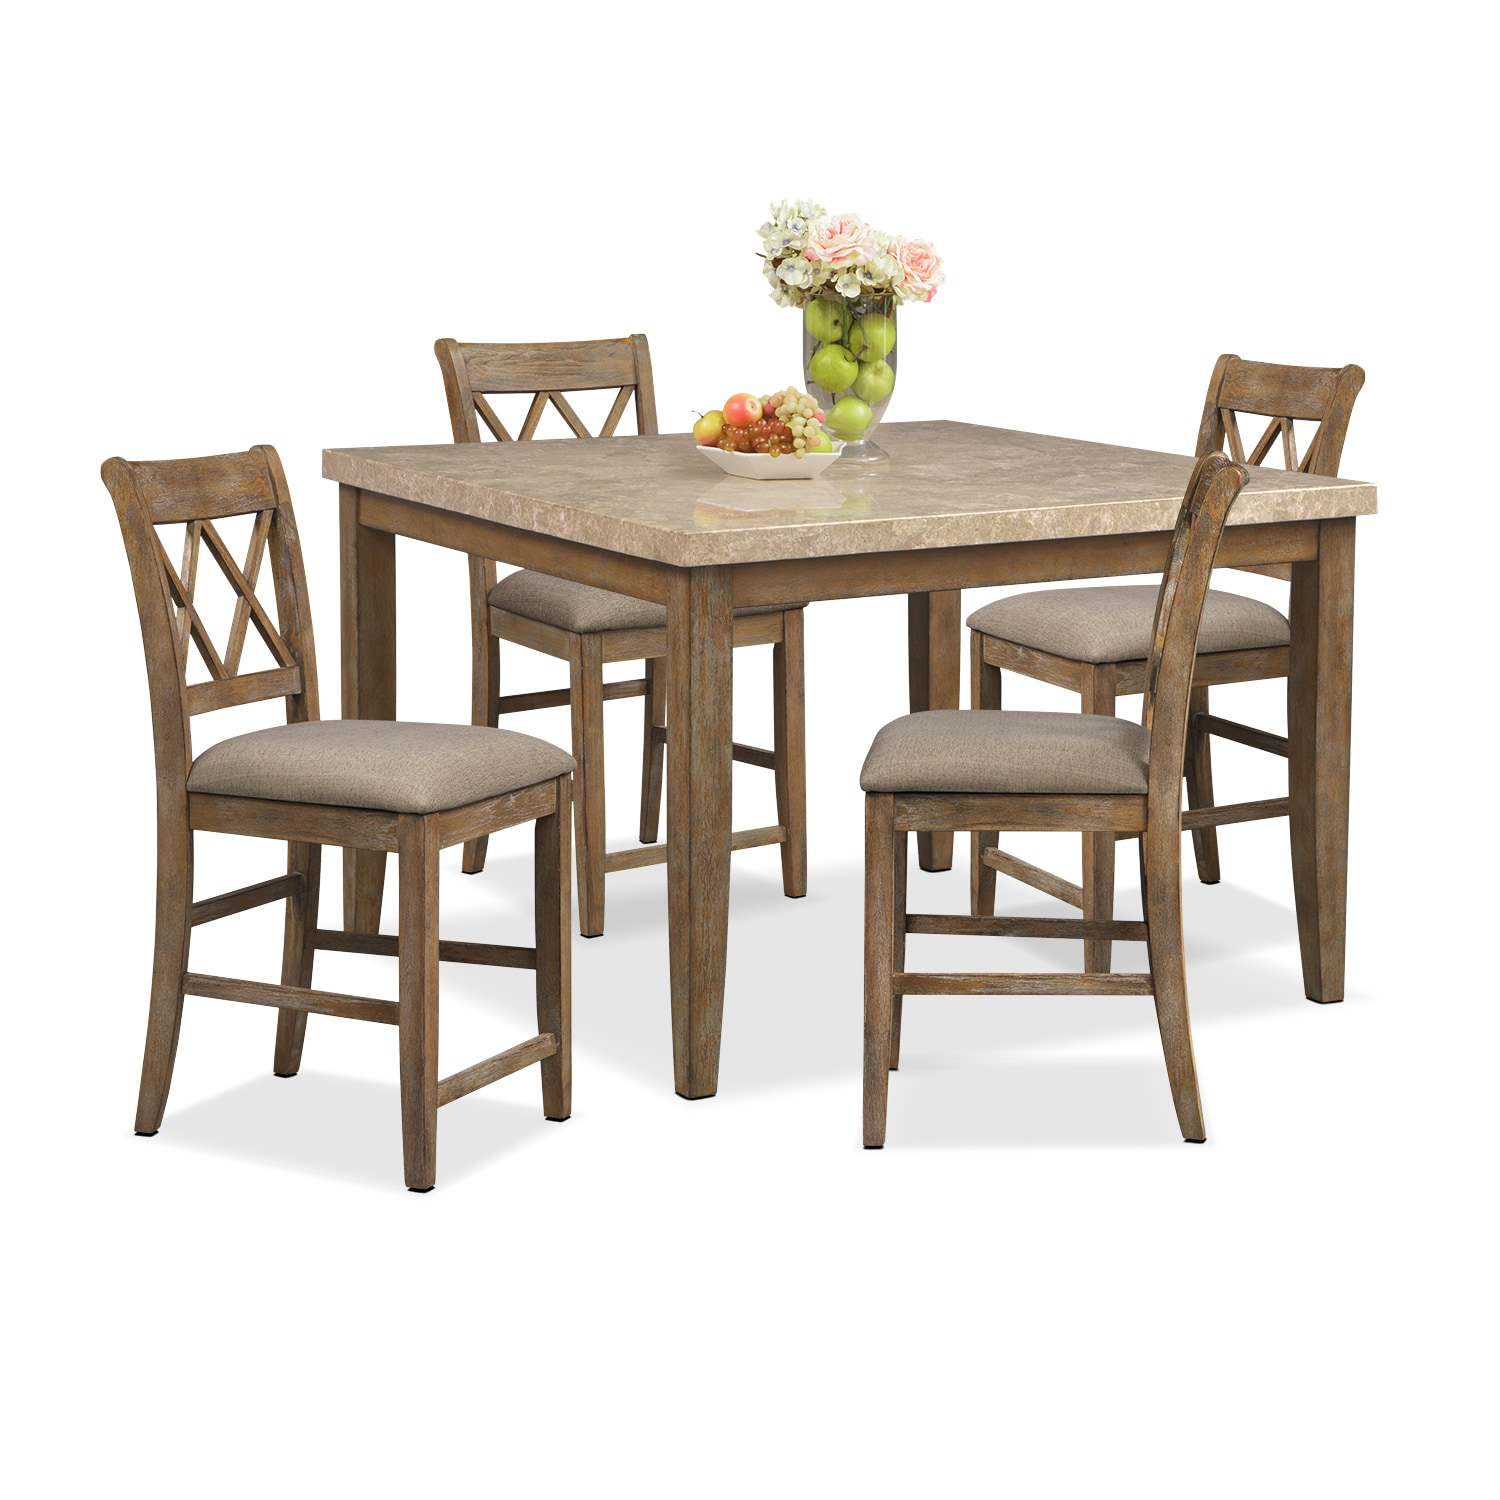 Dining Room Furniture - Sedona Gray 5 Pc. Counter-Height Dining Room